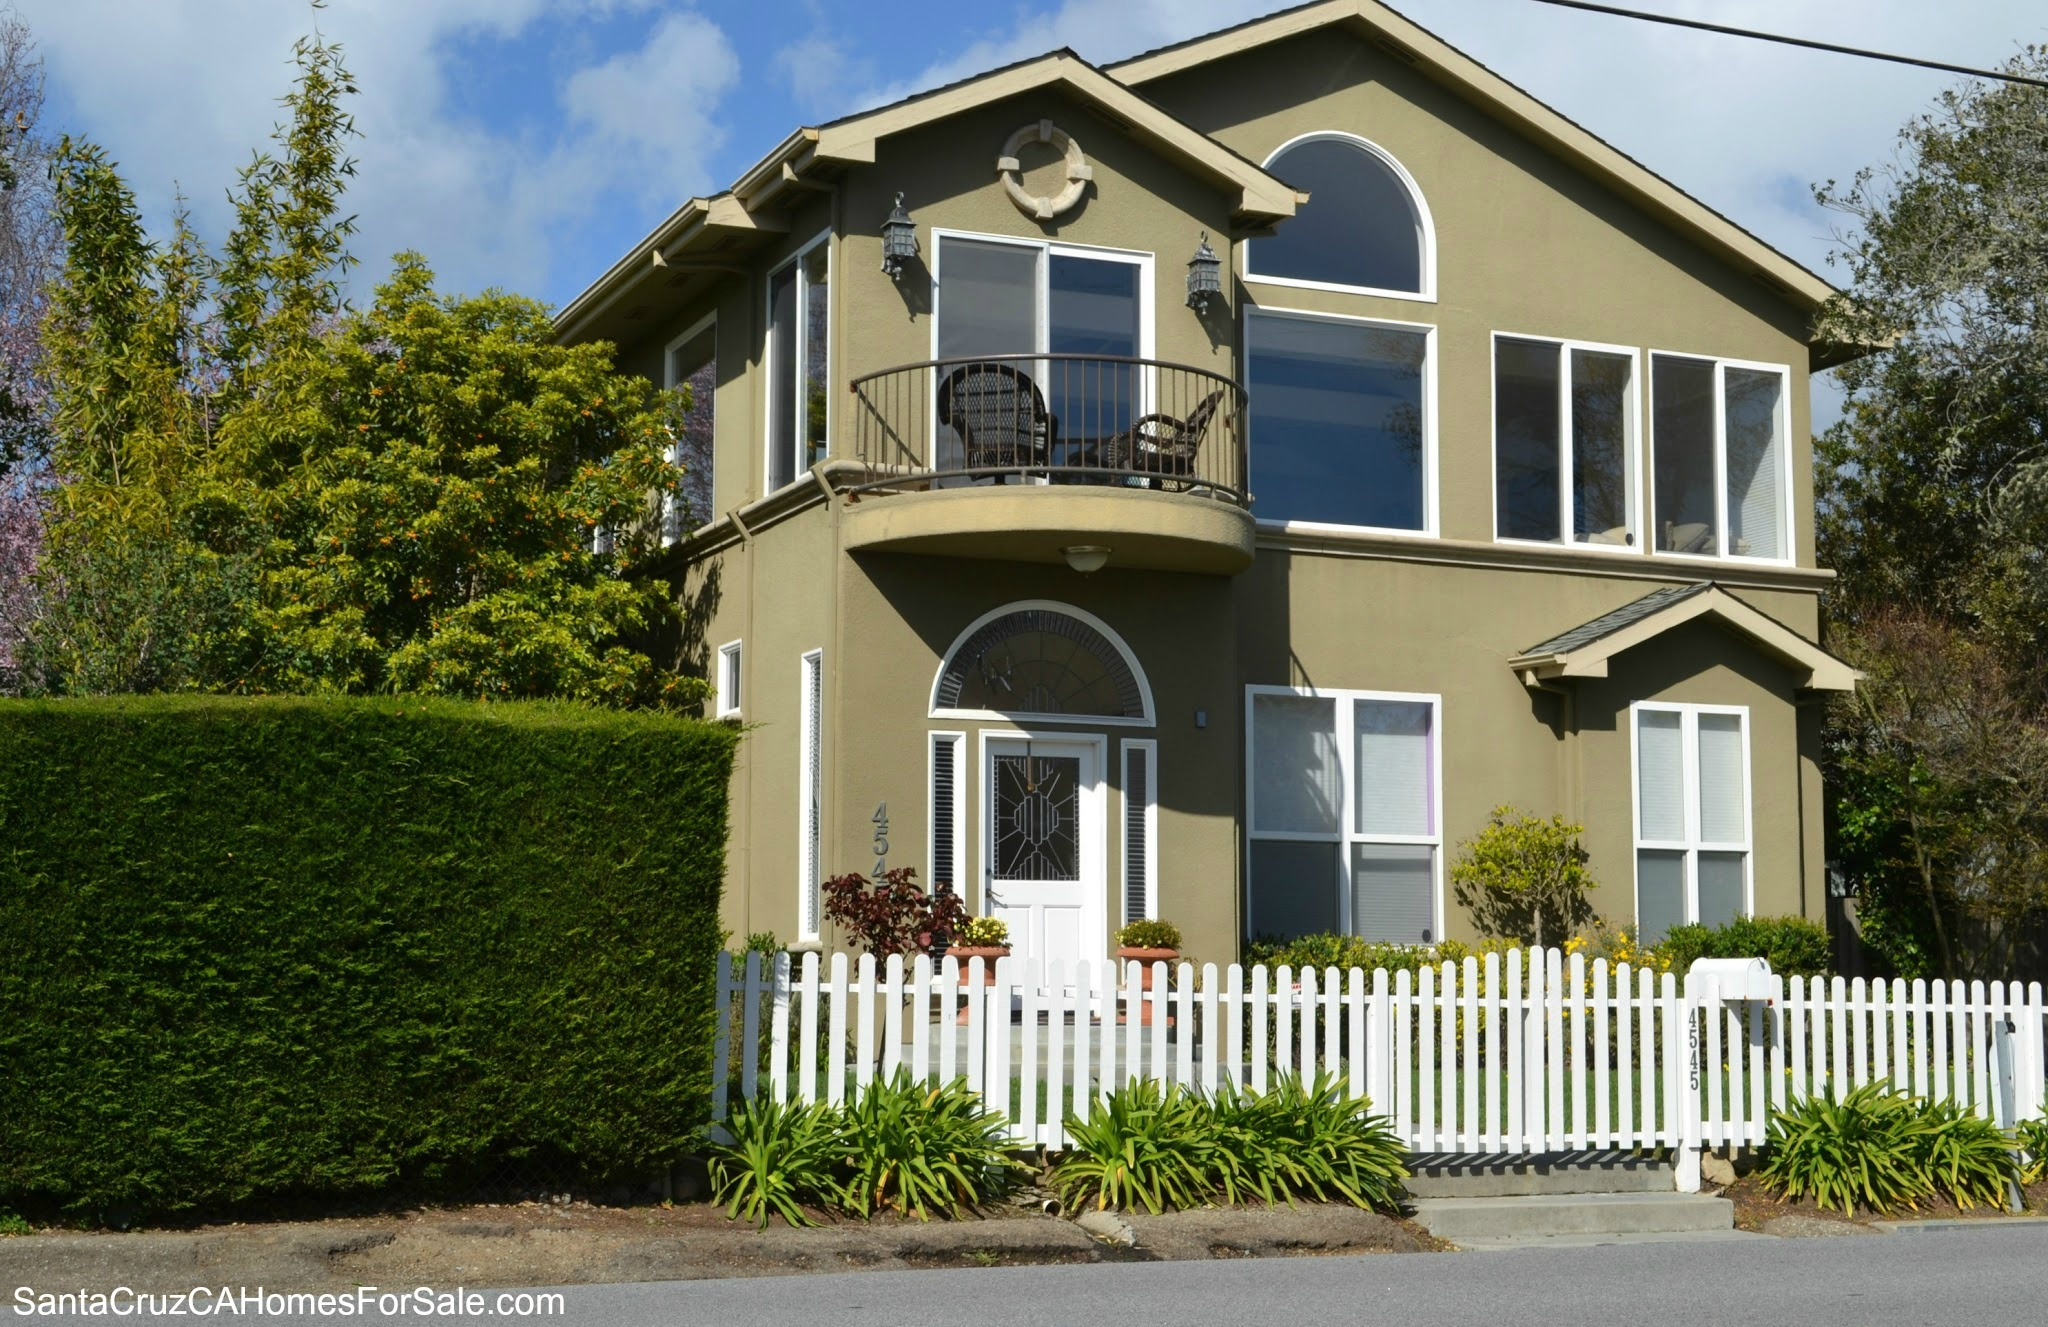 Capitola CA Homes for Sale - Maximize your ROI when you sell your Capitola home for sale.